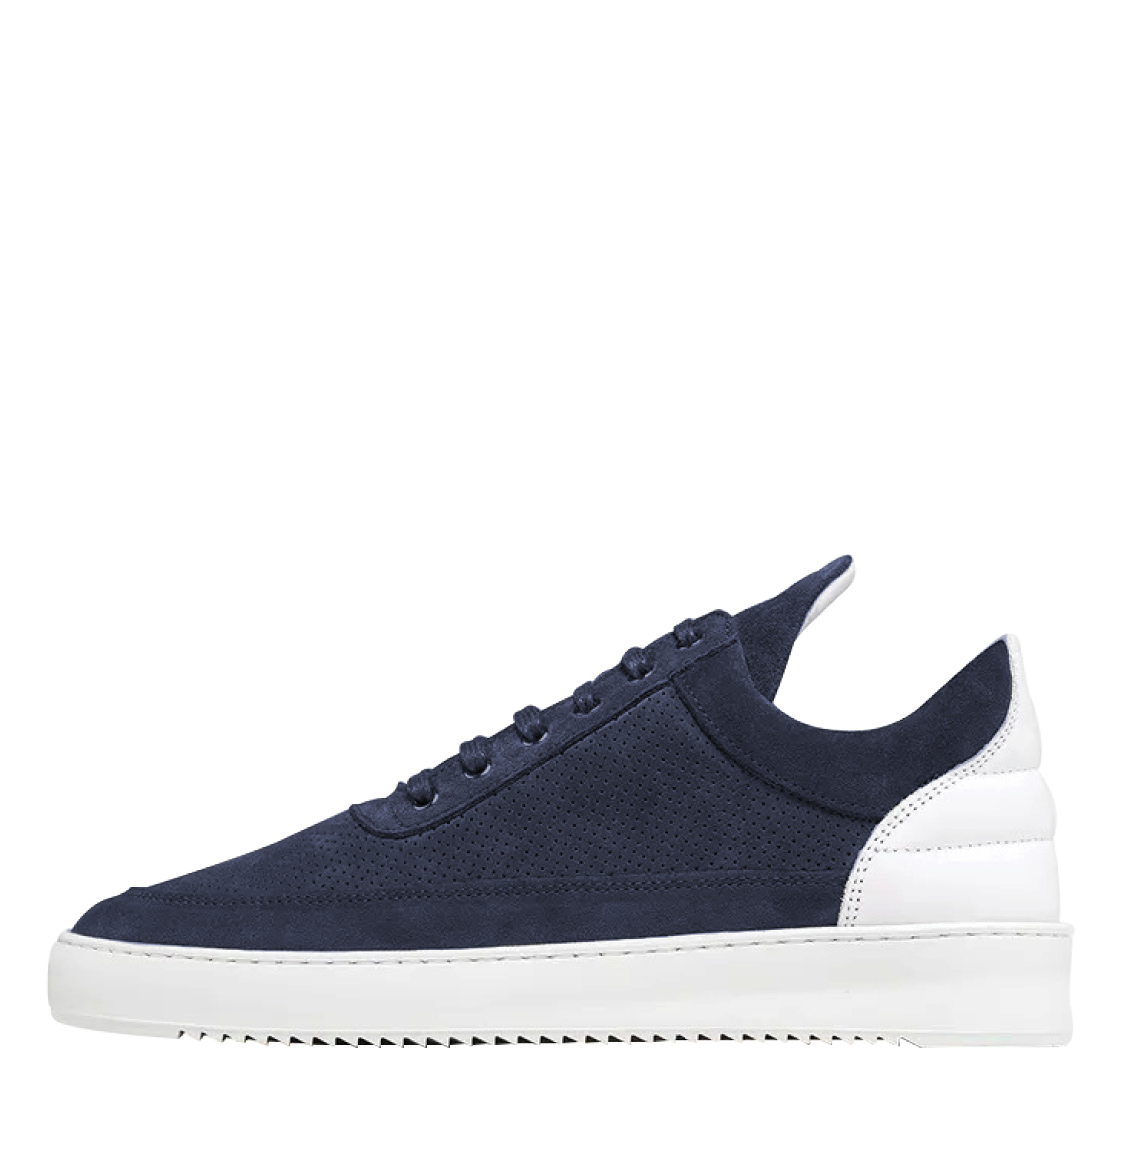 Filling_Pieces_Low_Top_Ripple_Perforated_Navy_The_Project_Garments_A